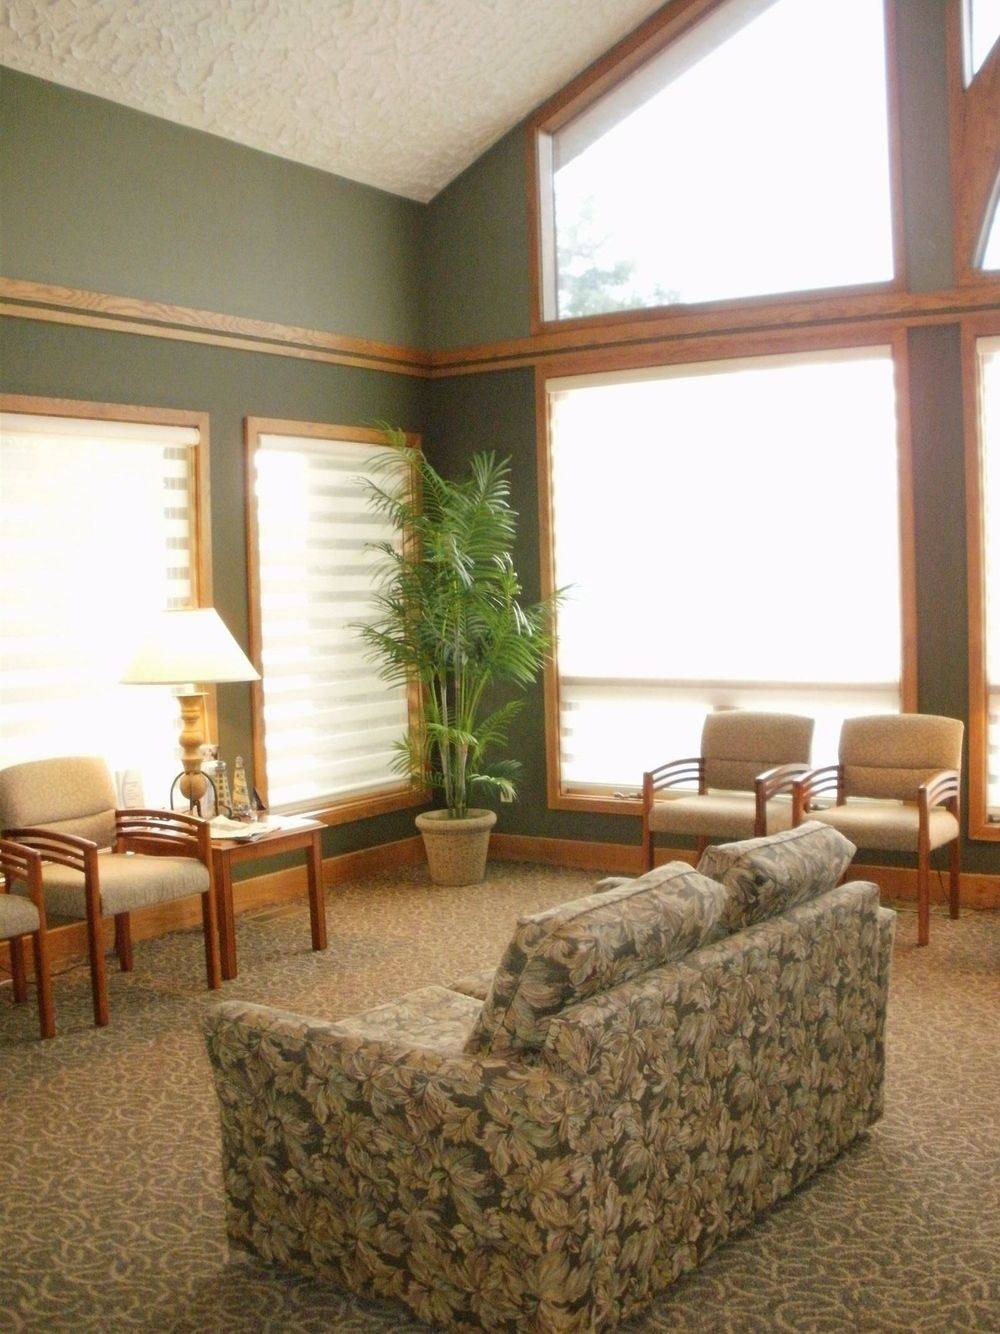 Dr Michael J. Dionise DDS waiting area.